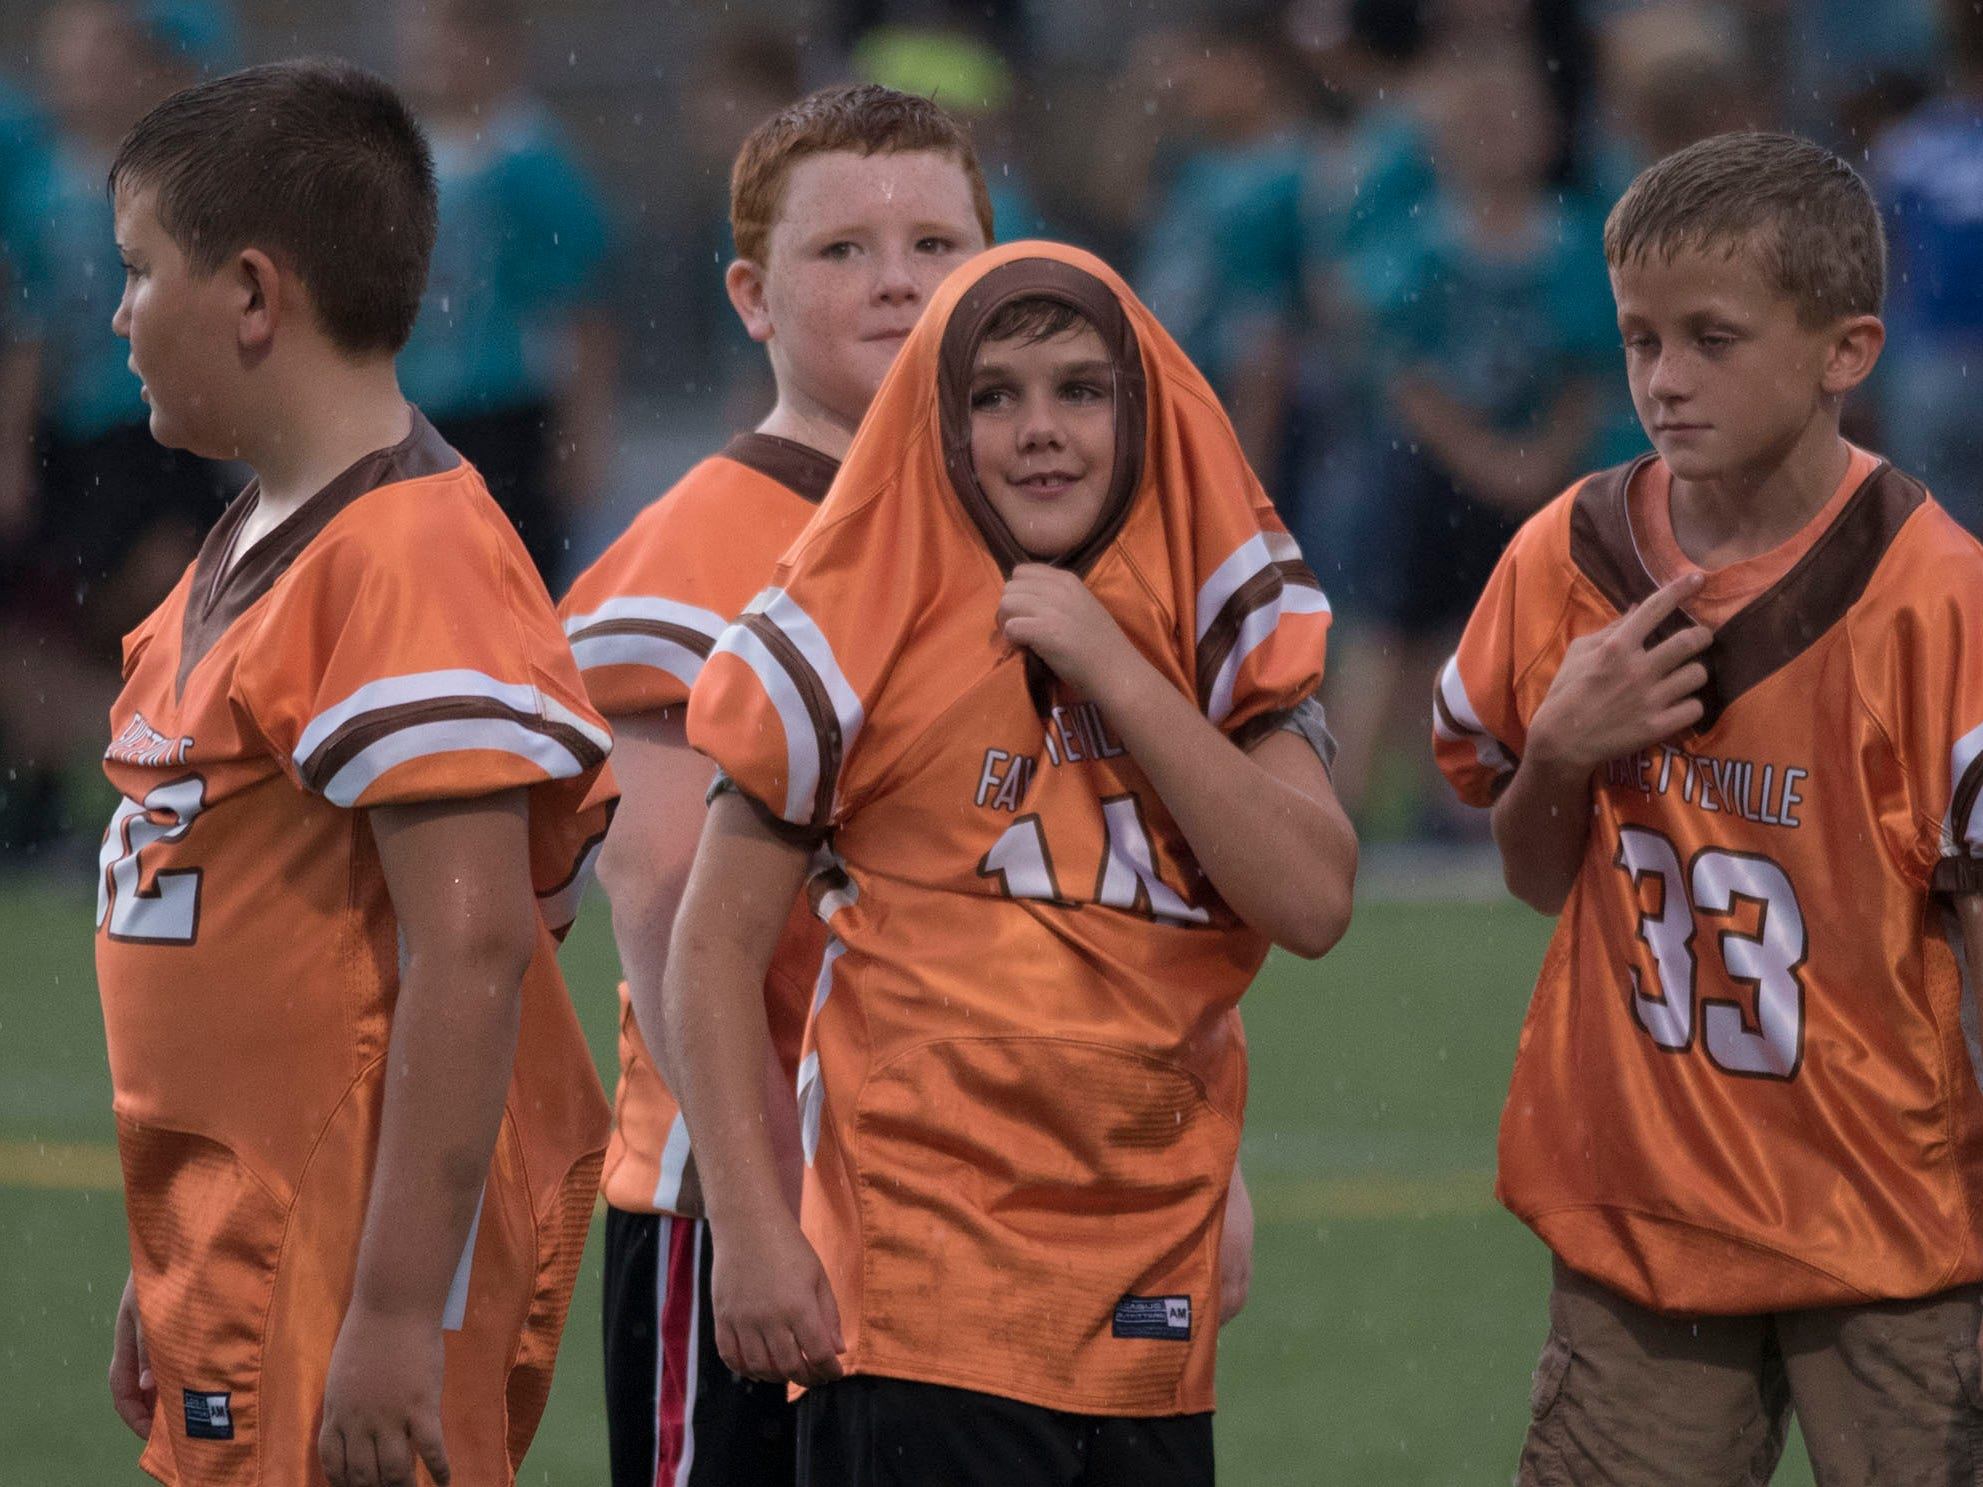 Youth league football players weather the storm for Friday's game. Chambersburg defeated Red Lion 28-19 in PIAA football on Friday, Sept. 7, 2018.